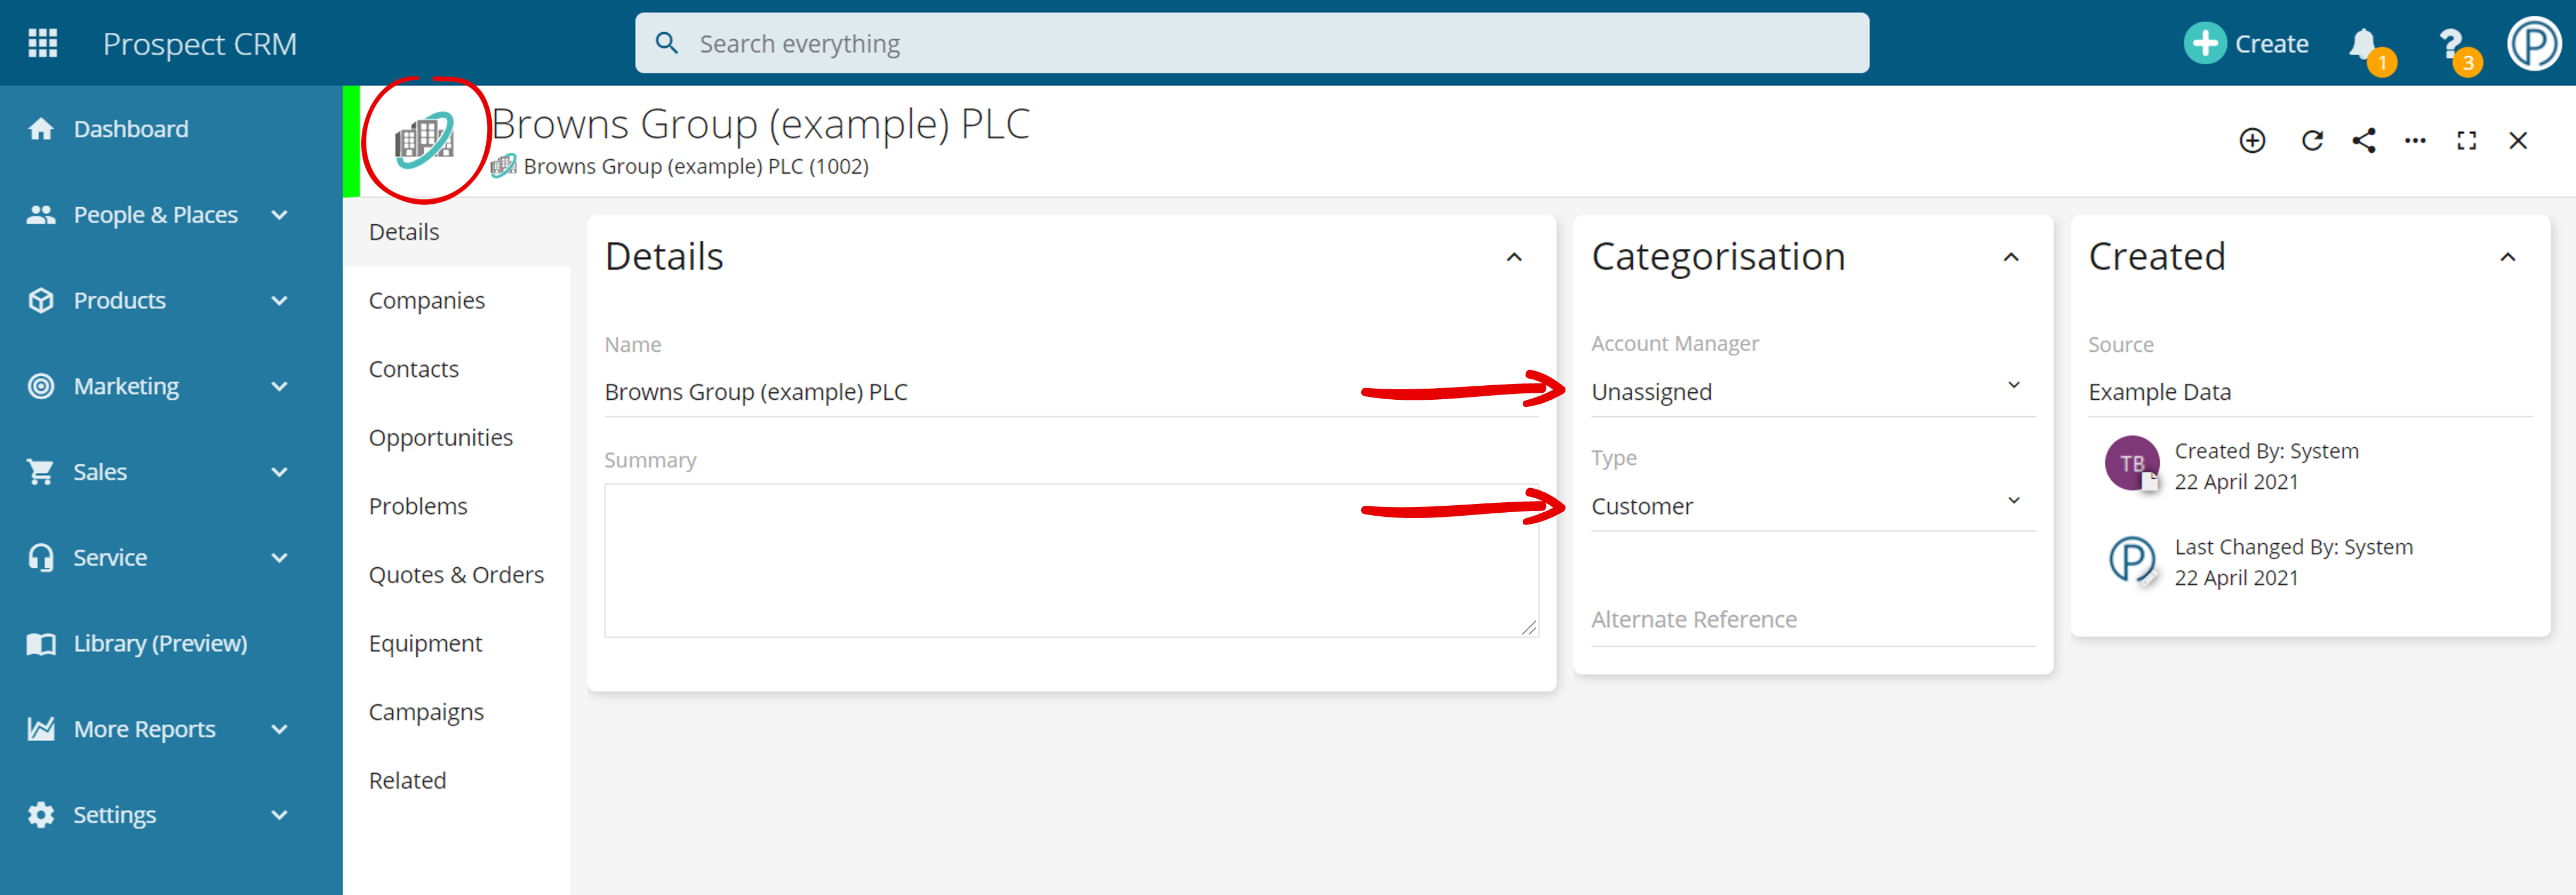 Company Group Record Layout in Prospect CRM